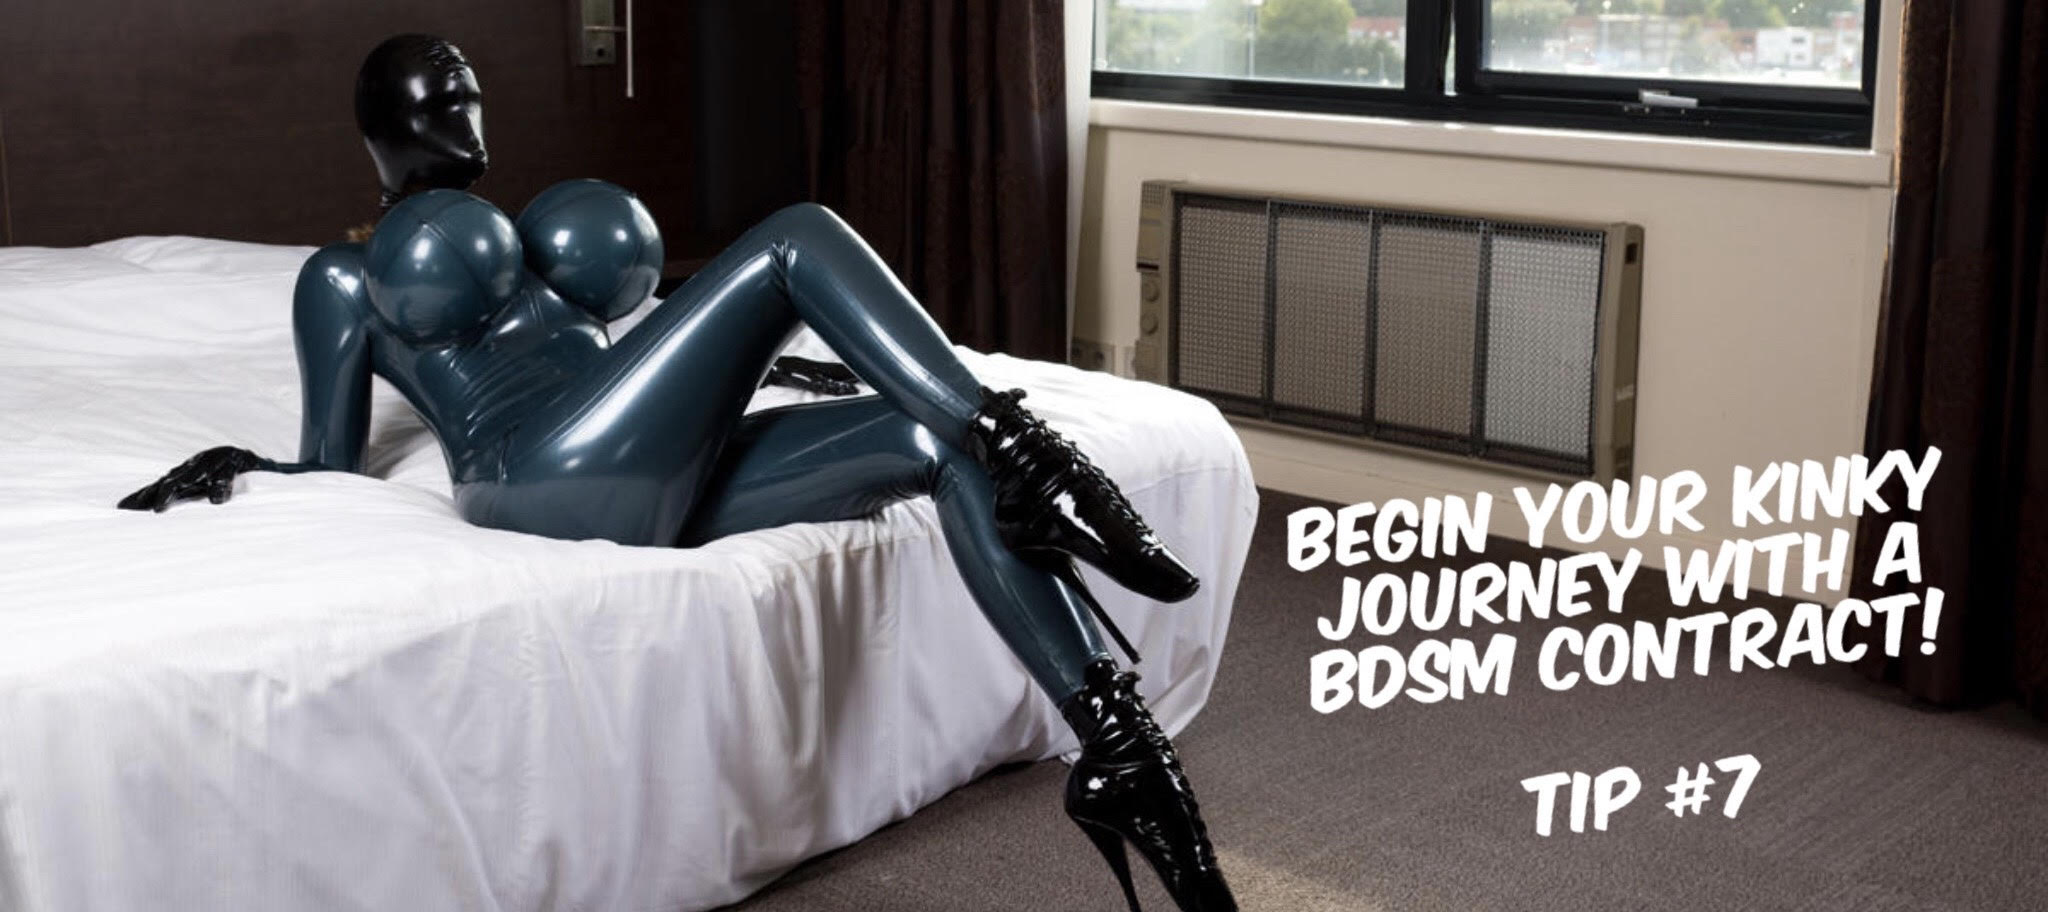 BDSMContracts_13